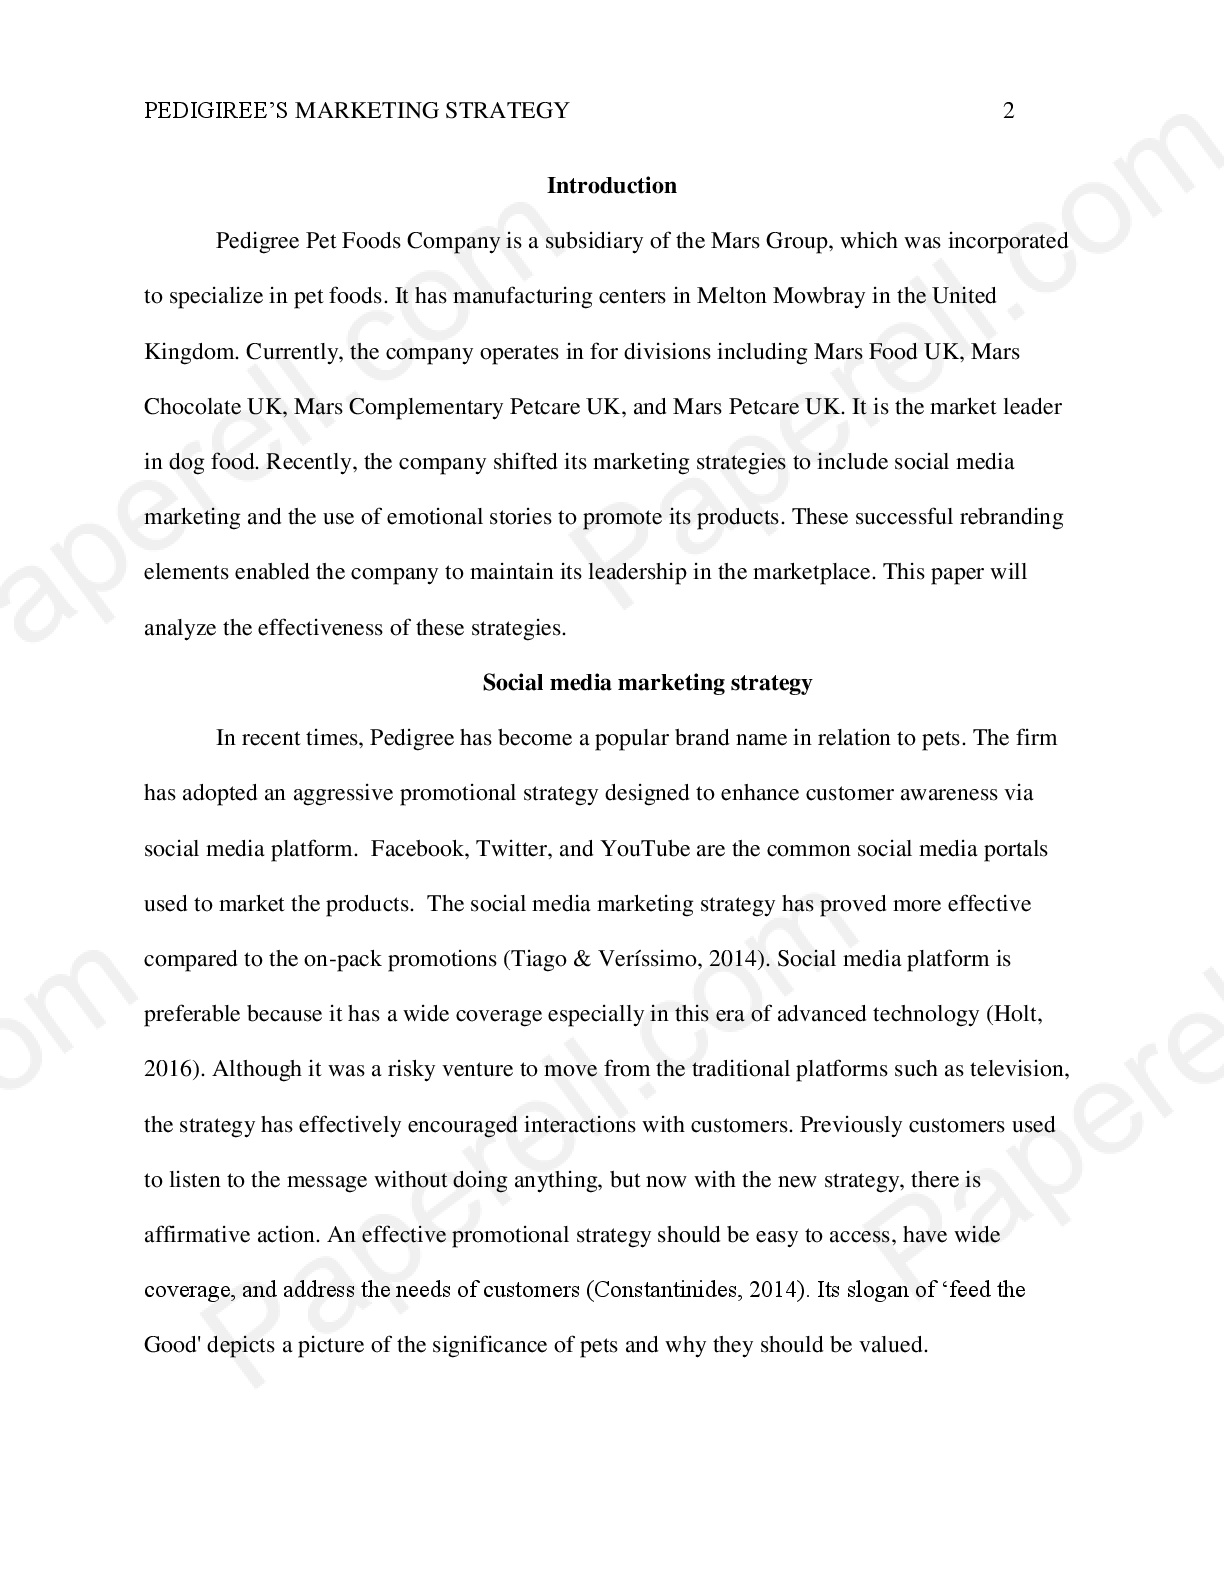 Essay Papers For Sale  Sample Essay Proposal also Paper Essay Writing Need A Custum Research Paper Written For Me Write Term Paper What Is A Thesis Statement For An Essay